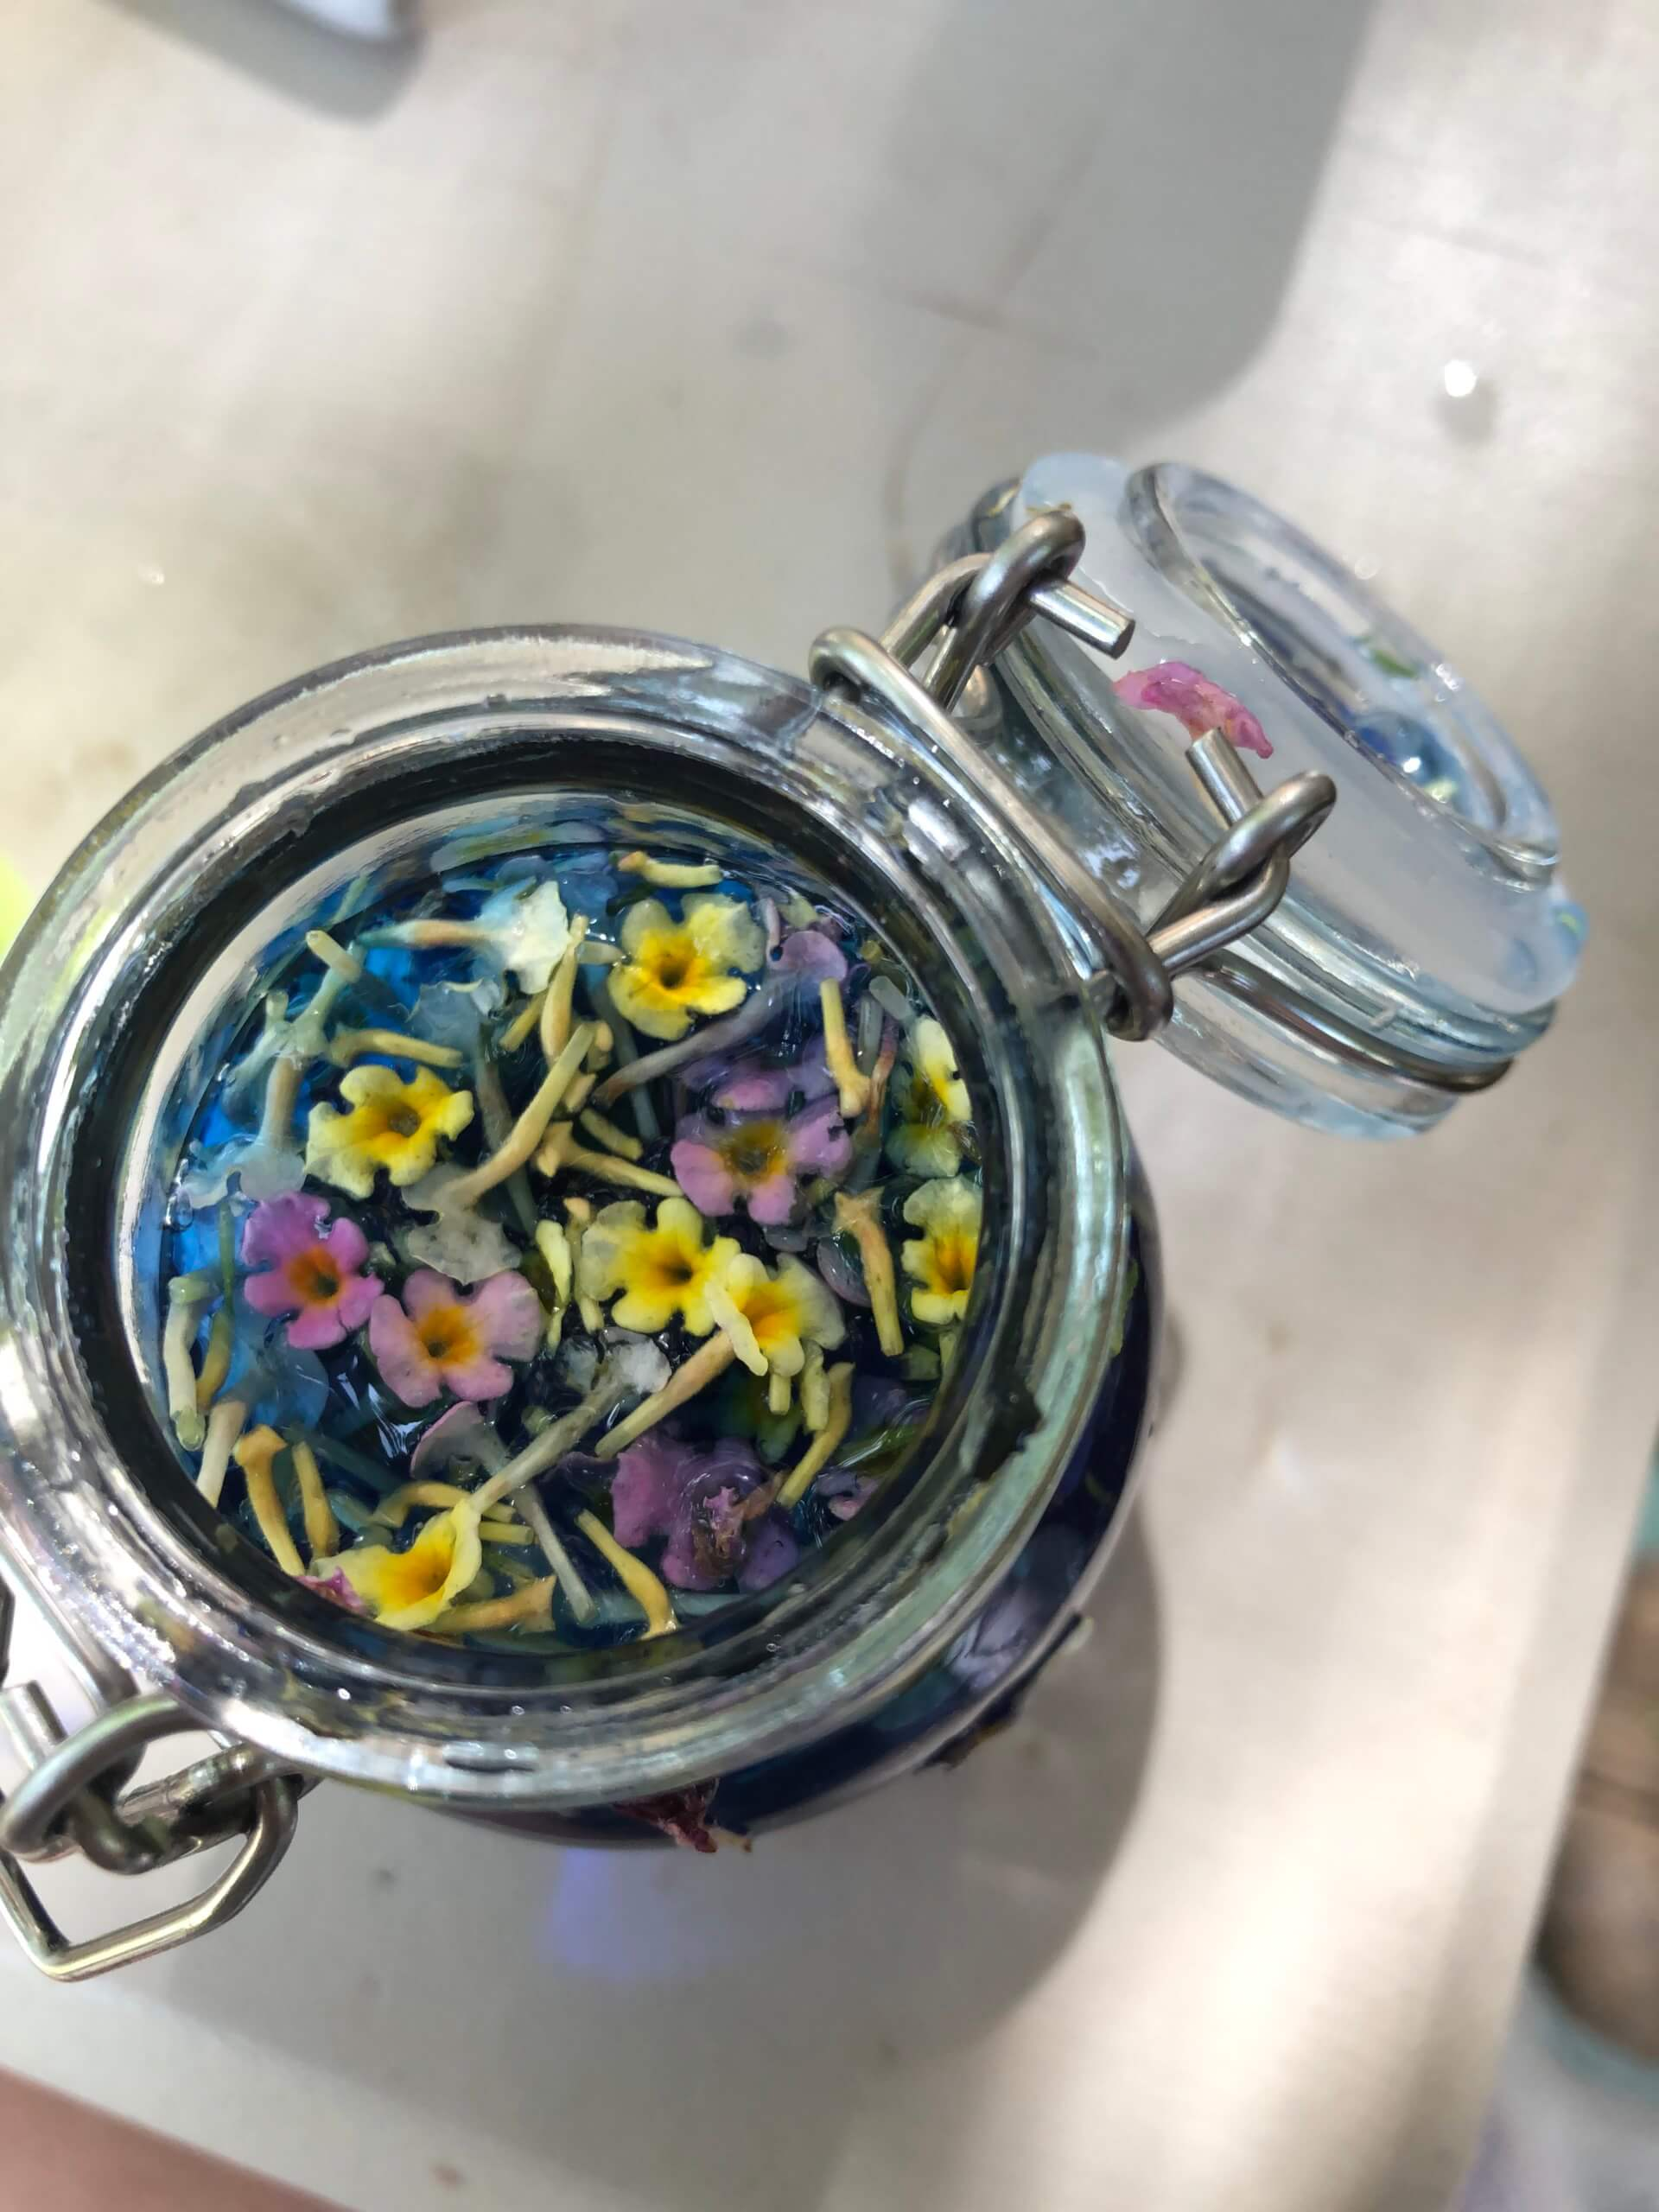 Open jar of blue liquid with colorful flowers